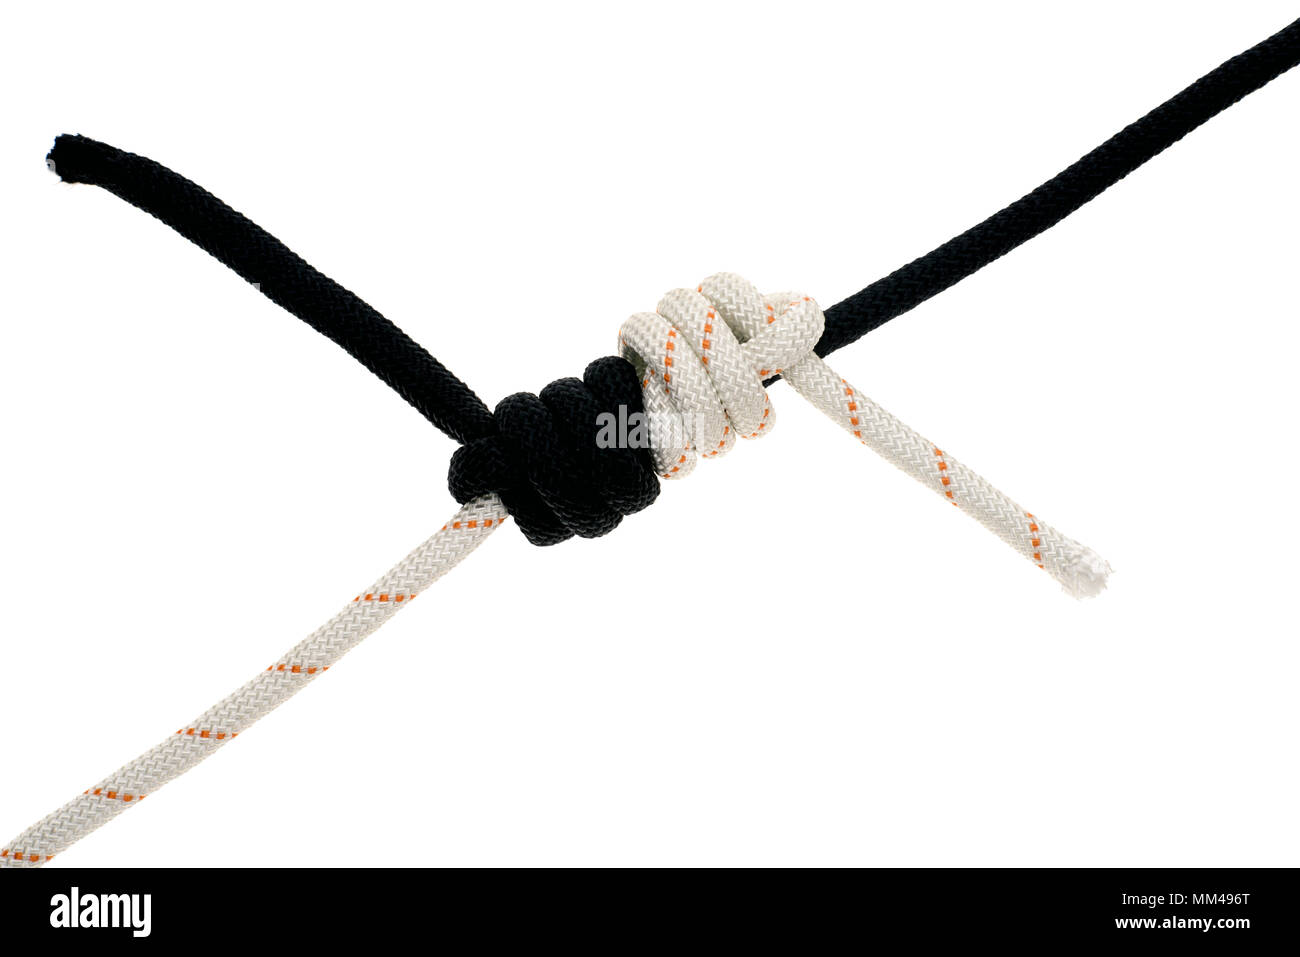 tied ropes - Stock Image